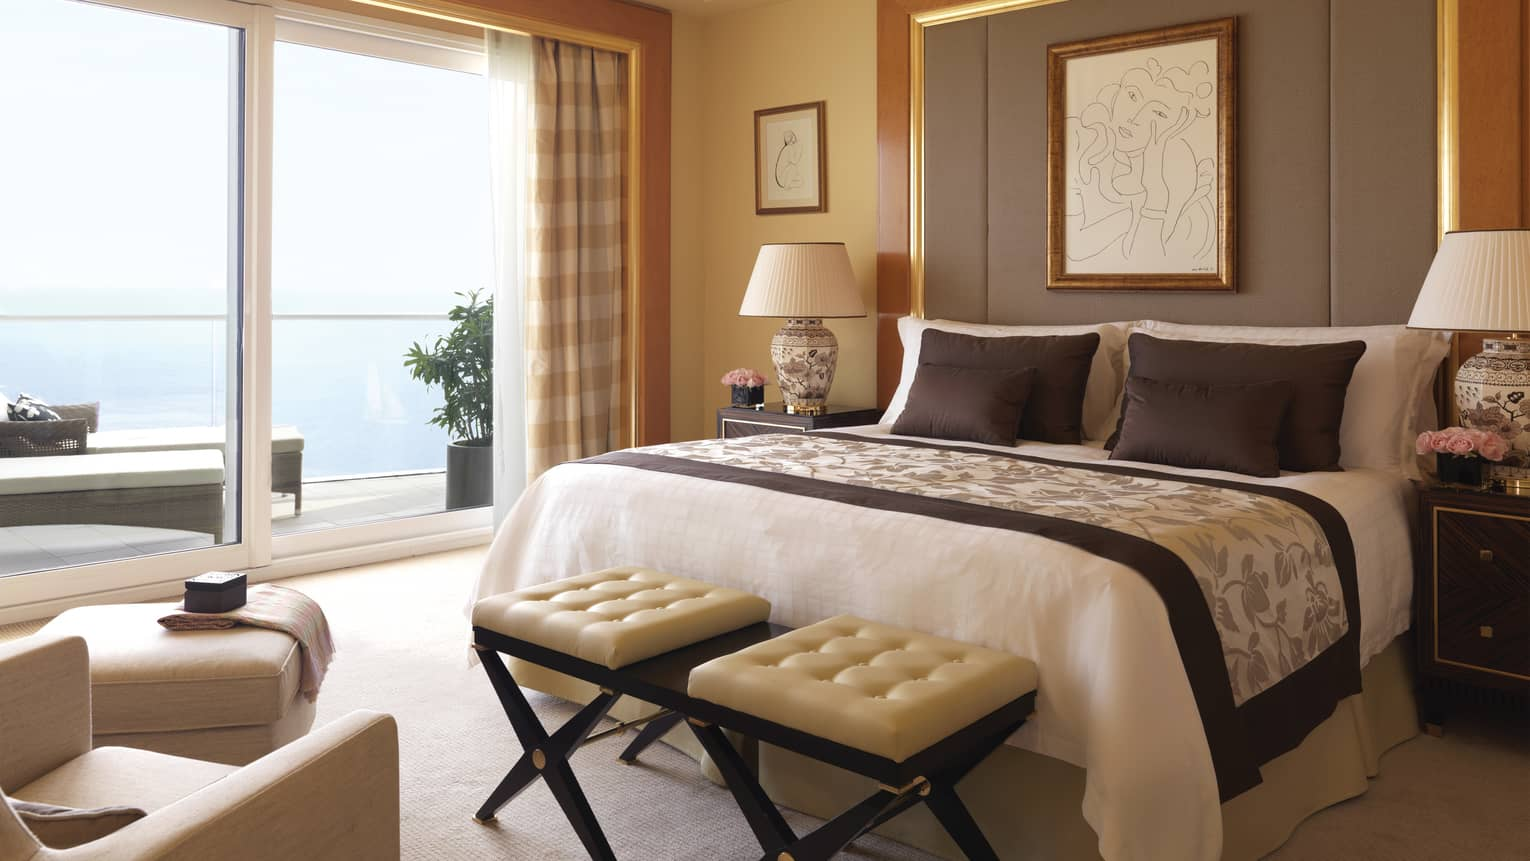 Diplomatic suite room with bed with tall upholstered headboard, bench with two white leather seats, white ottoman